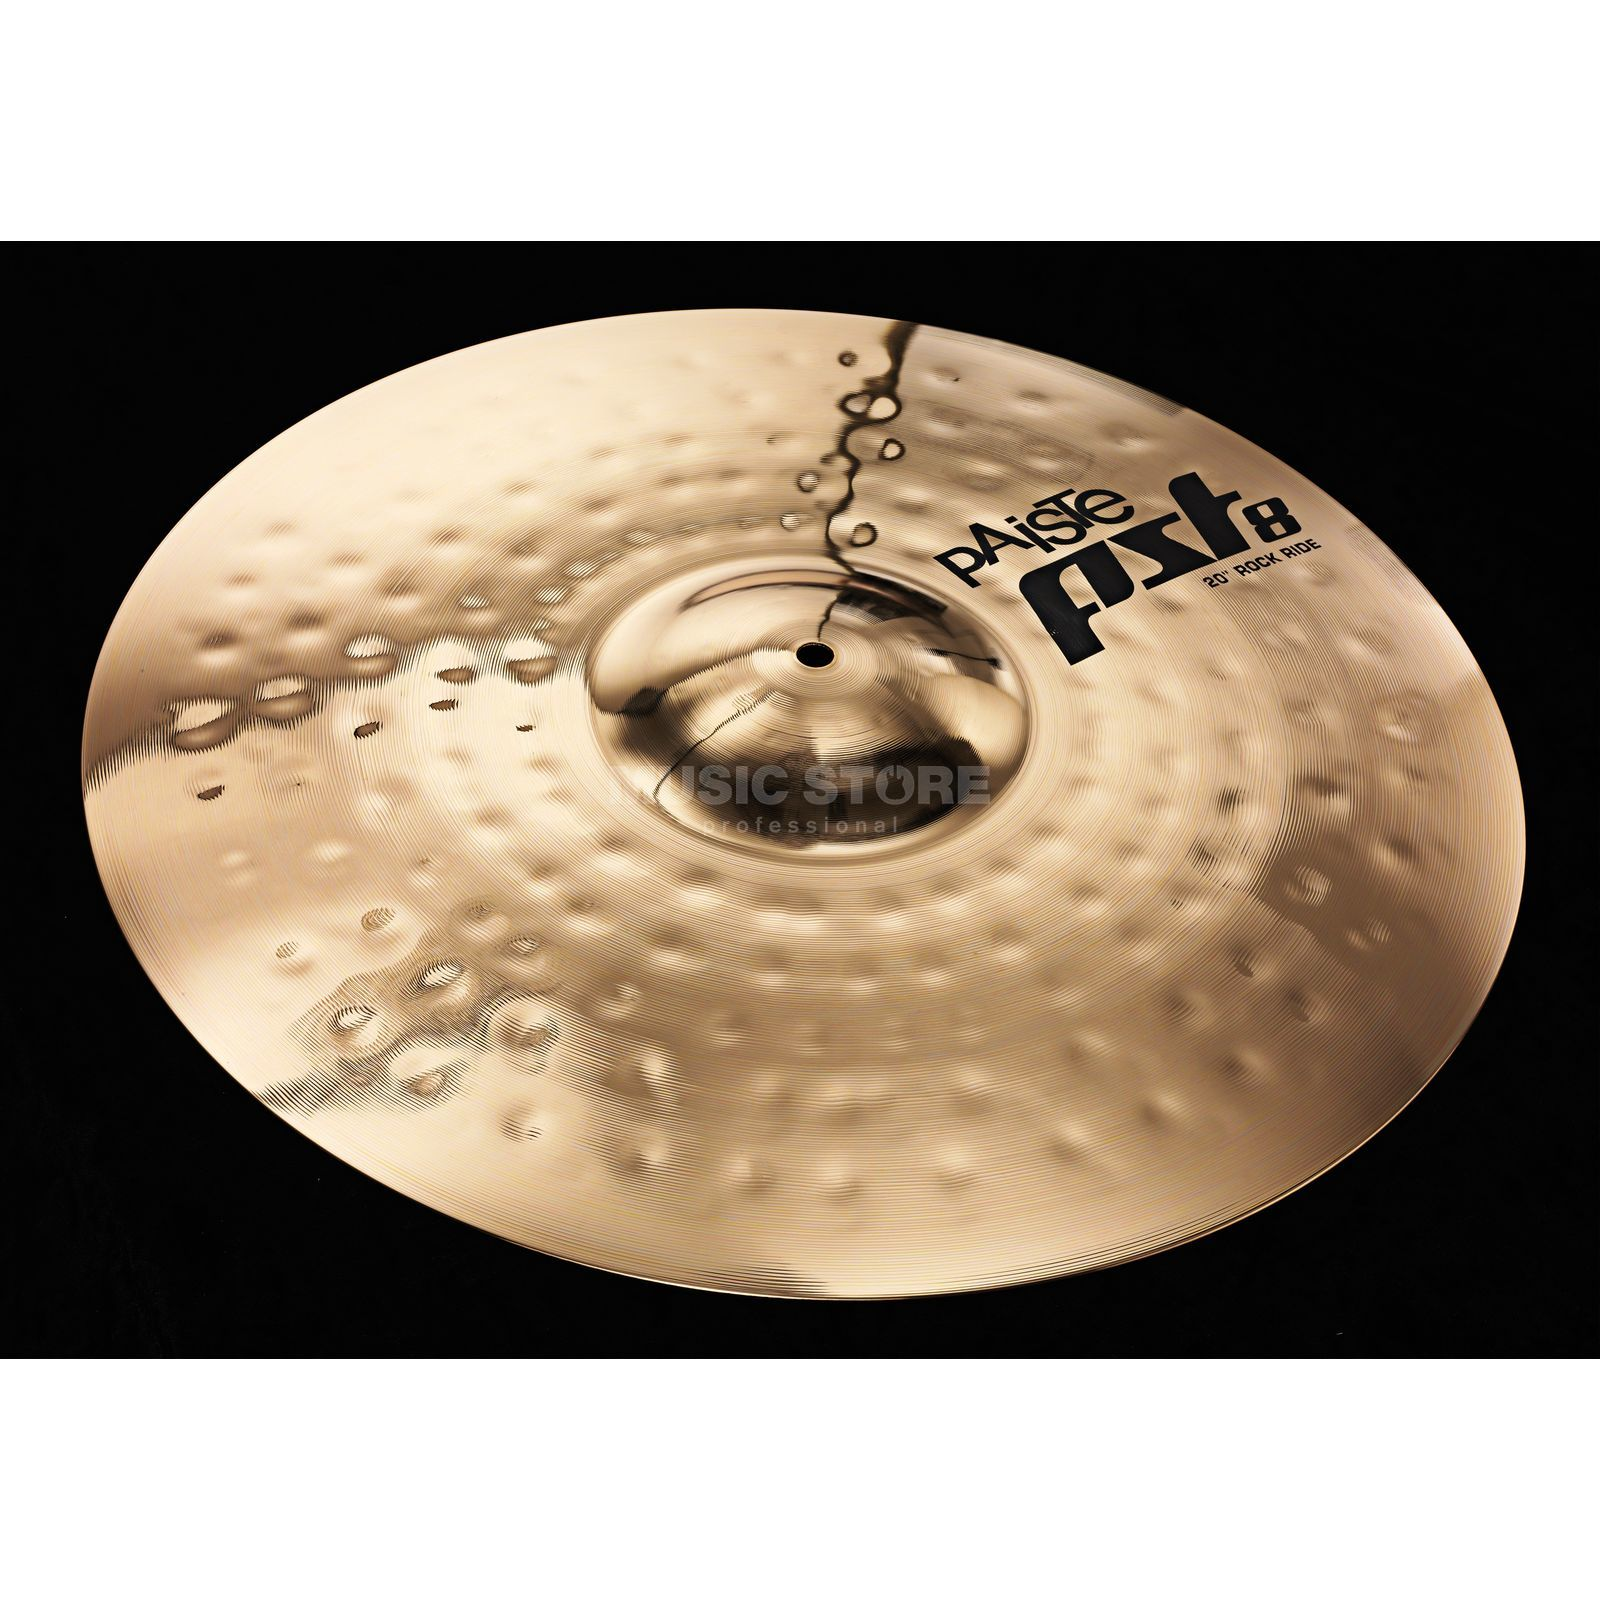 "Paiste PST8 Rock Ride 20"", Reflector Finish Produktbild"